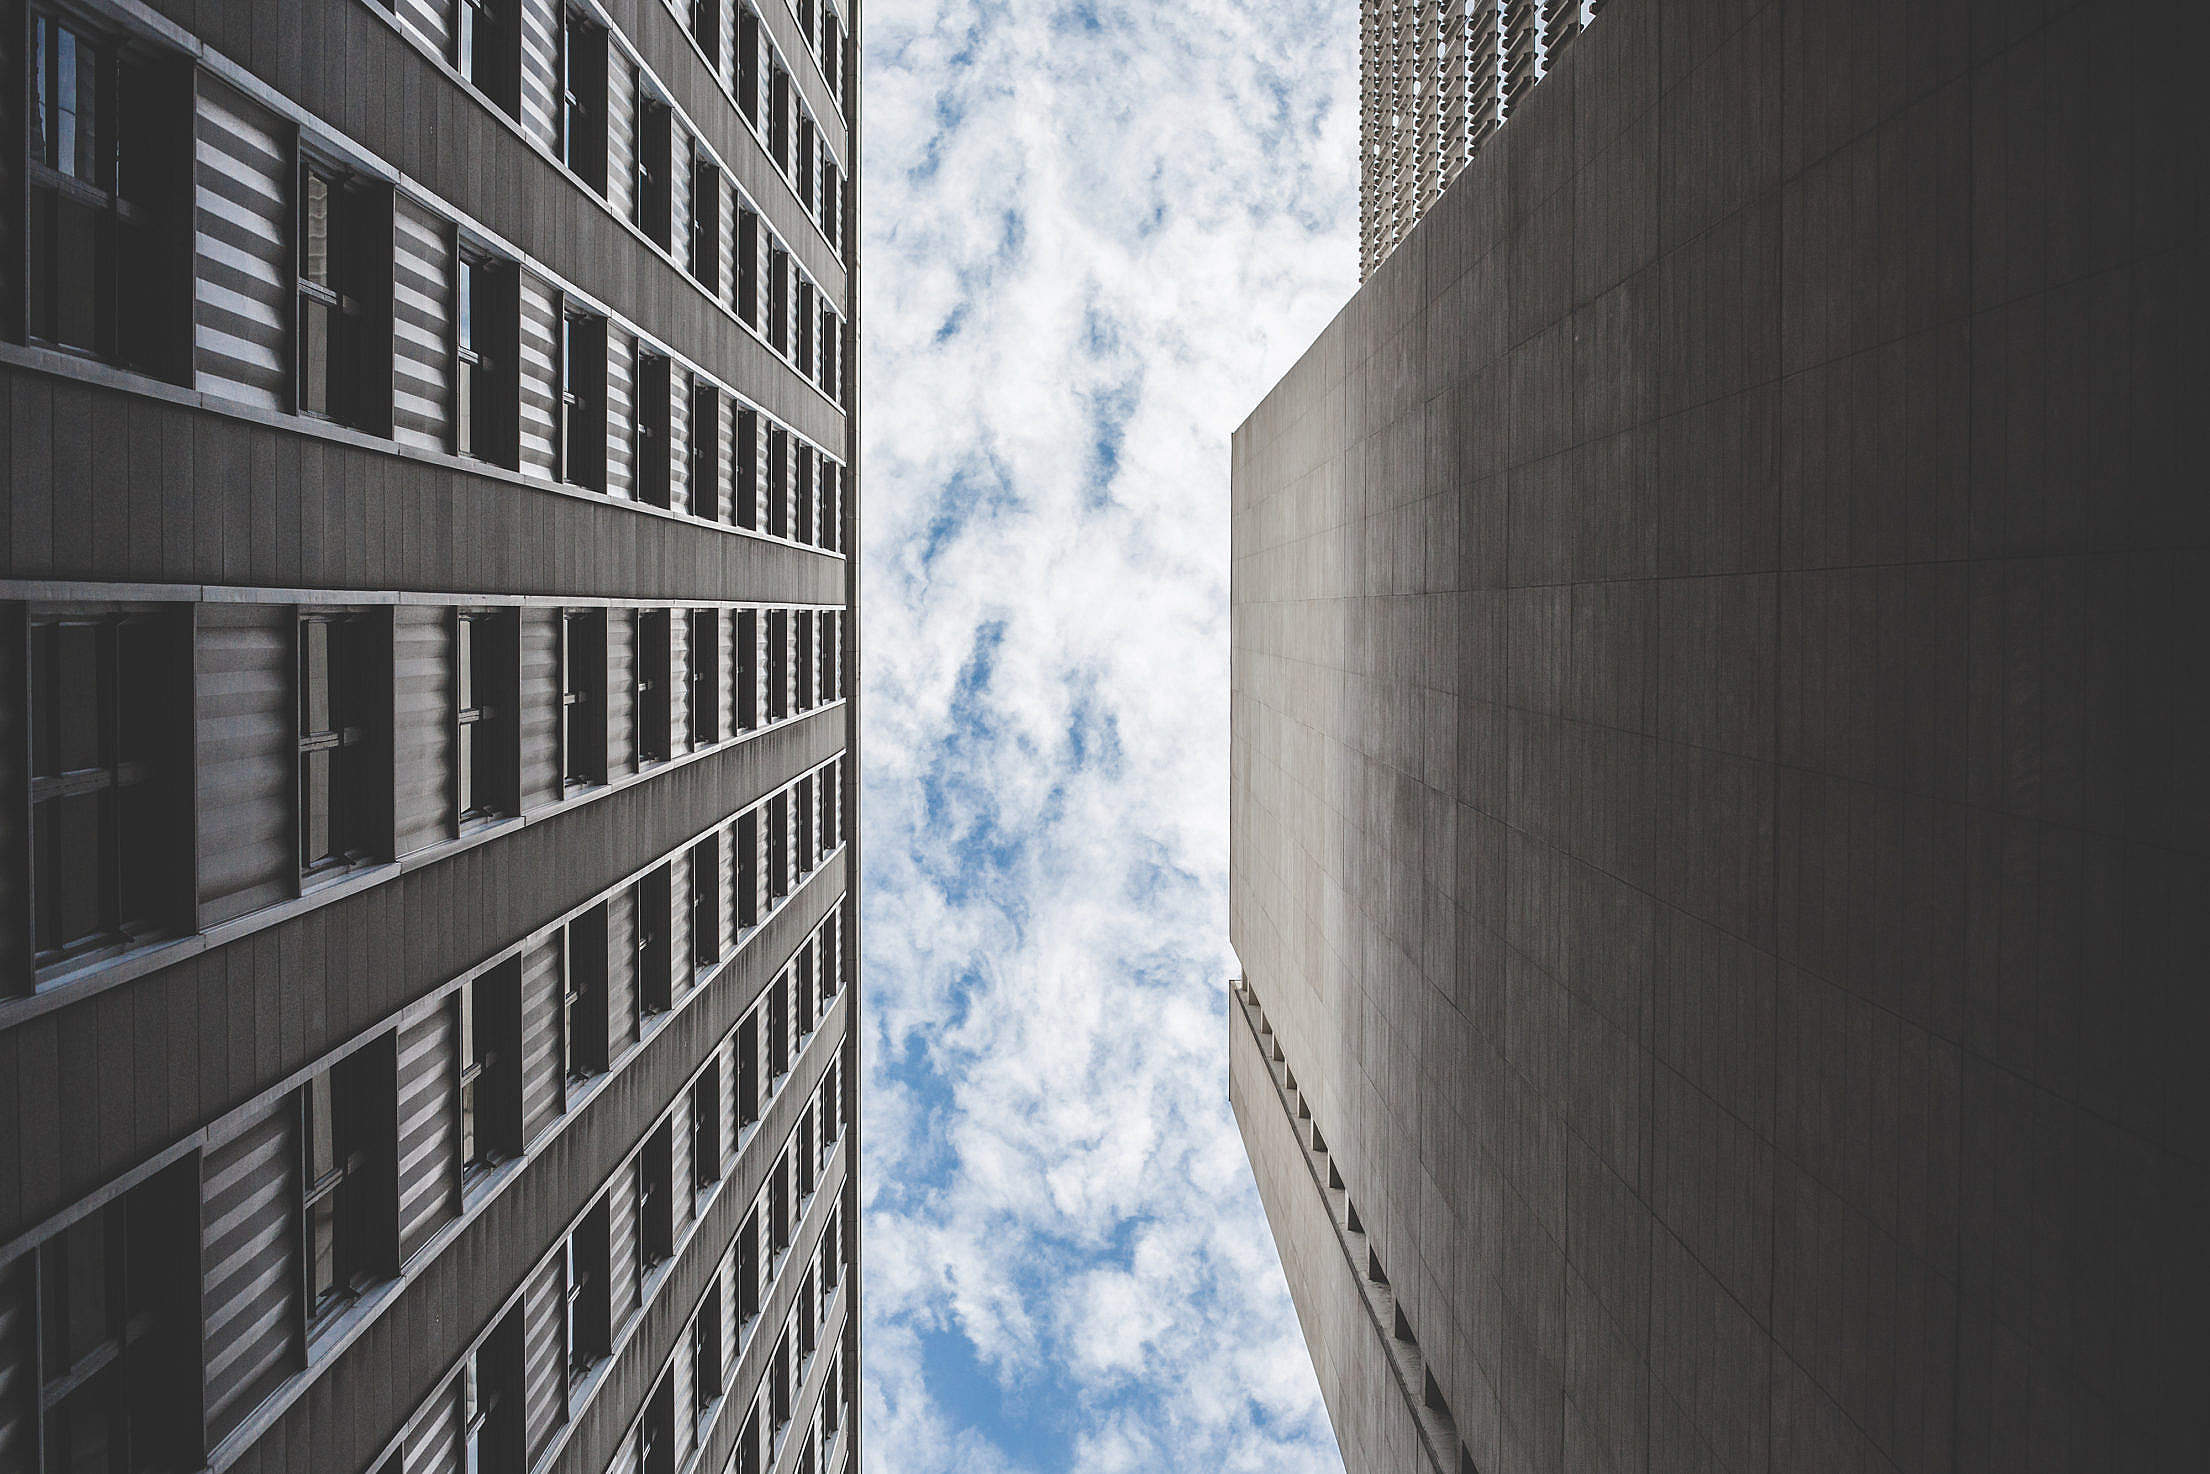 Cloudy Sky Between Two Skyscrapers Buildings Free Stock Photo